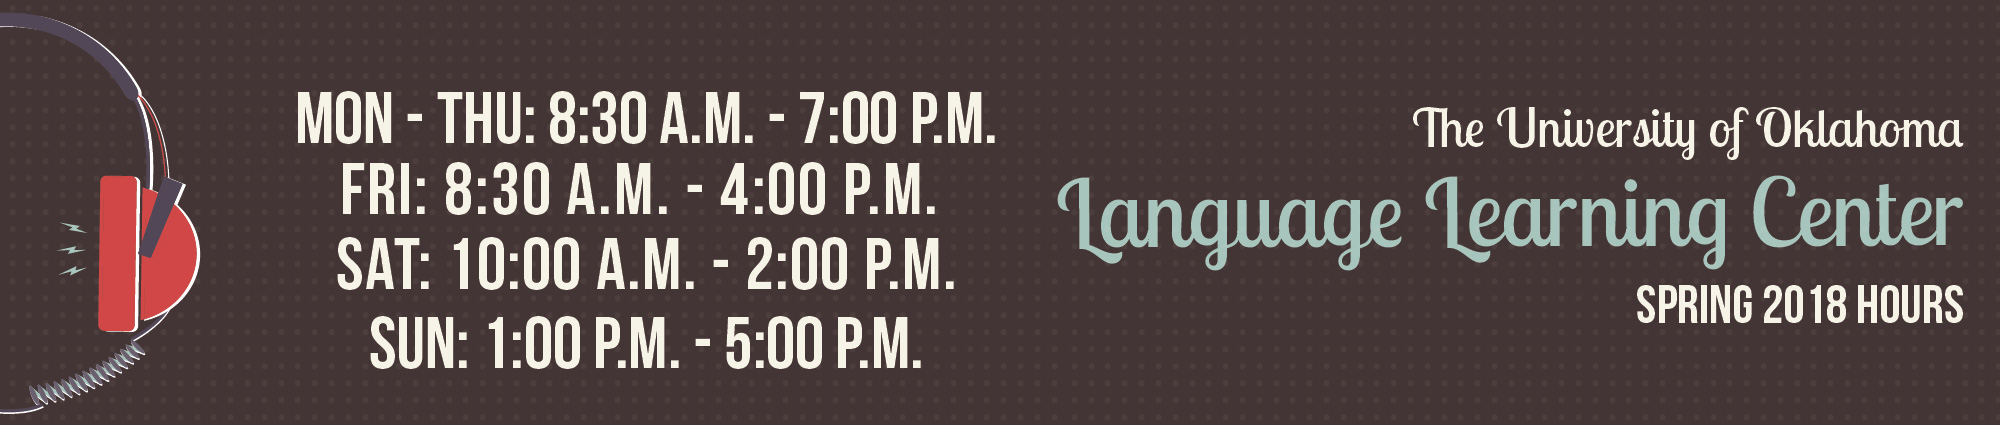 The Language Learning Center's Spring Hours of Operation